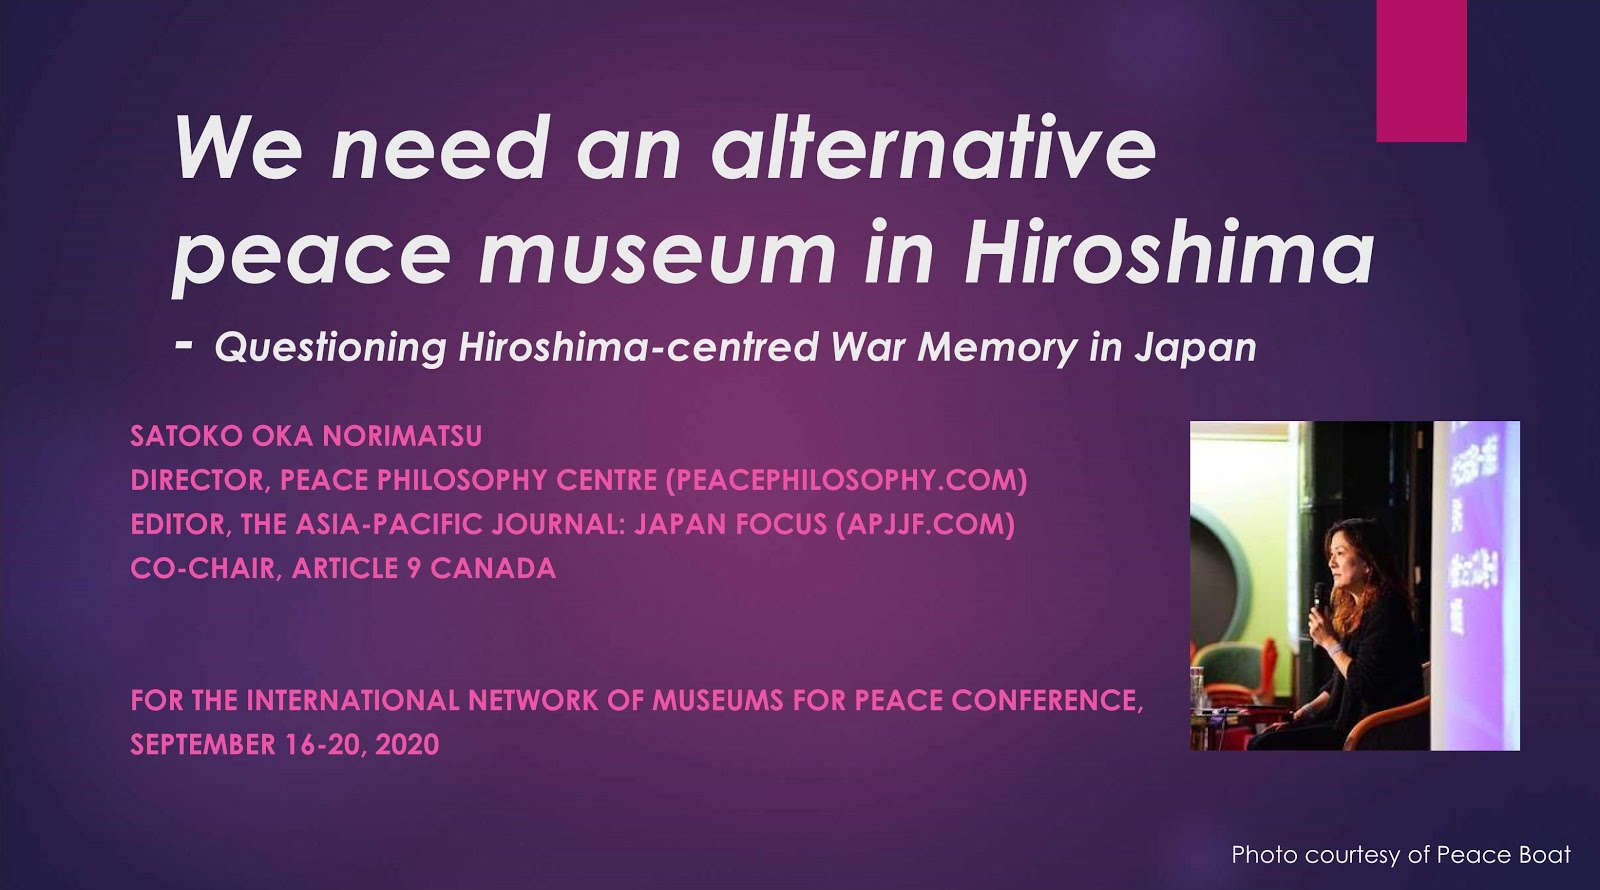 We need an alternative peace museum in Hiroshima